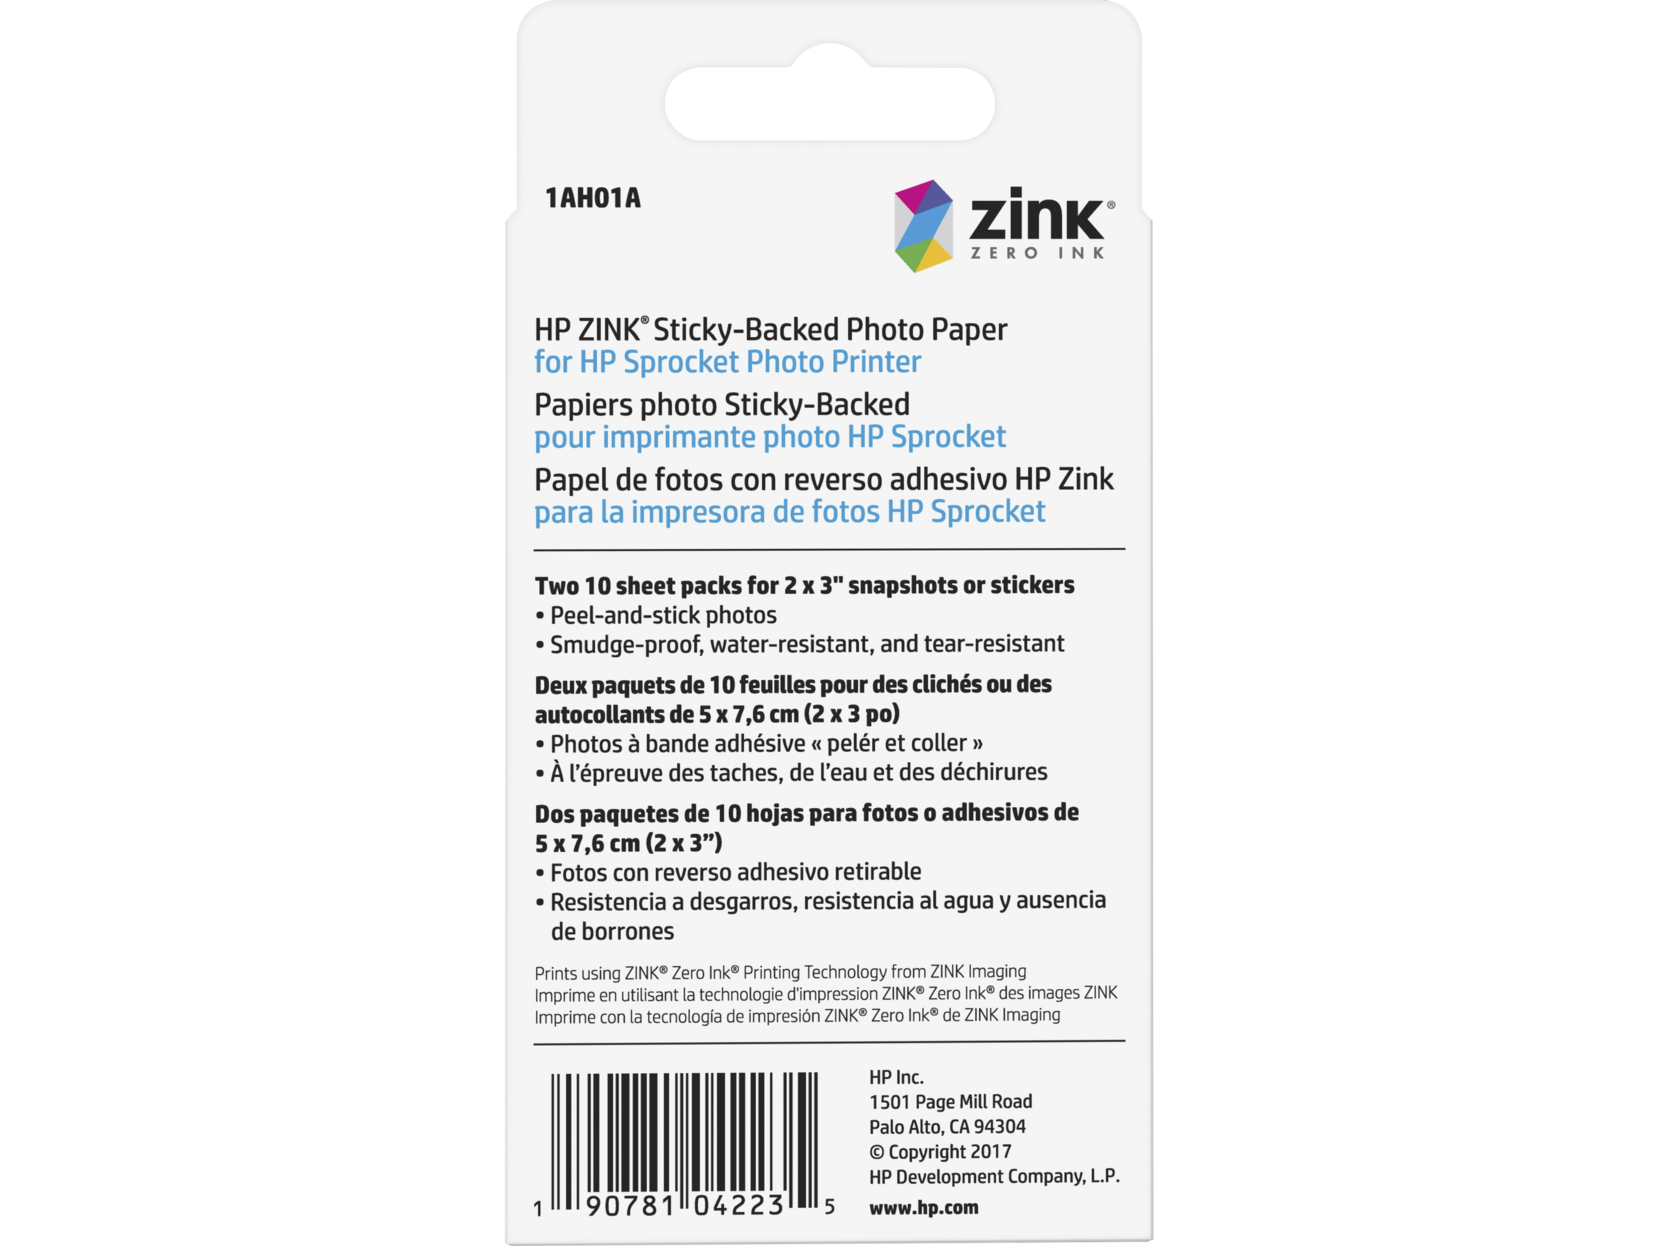 HP ZINK™ Sticky-backed Photo Paper-20 sht/2 x 3 in - Printer